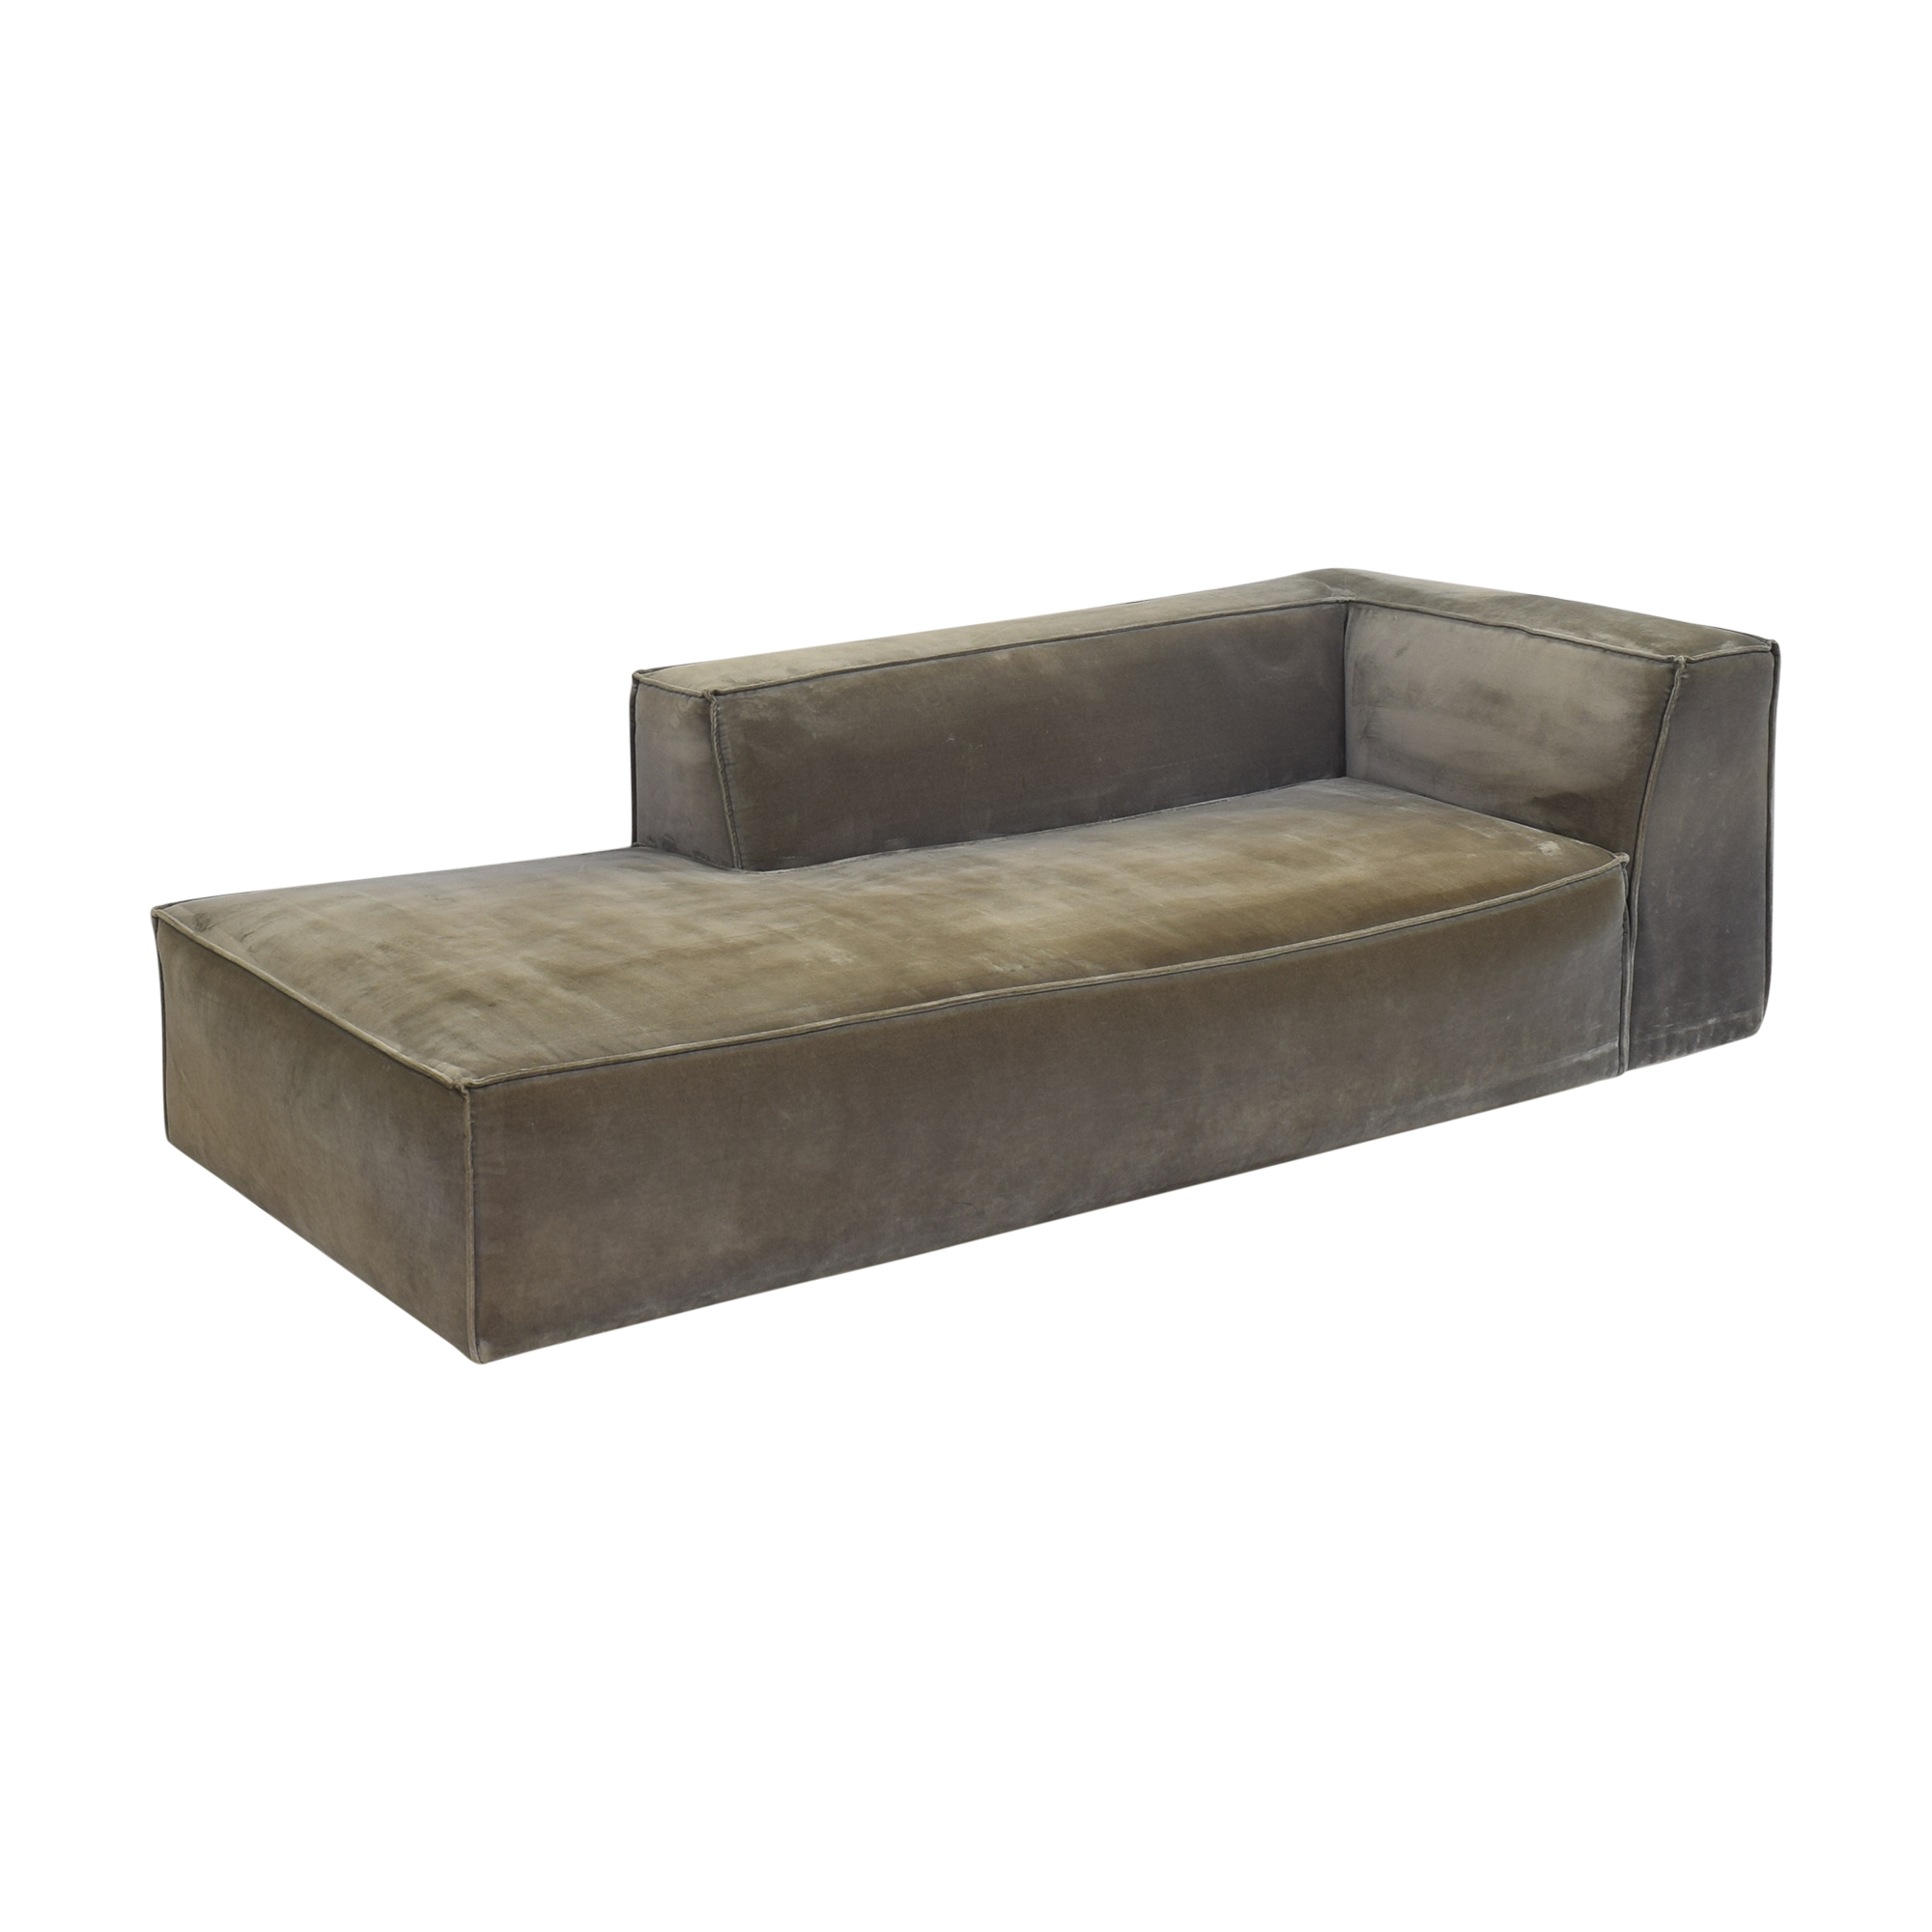 Nathan Anthony Nathan Anthony Chaise Lounge Sofas